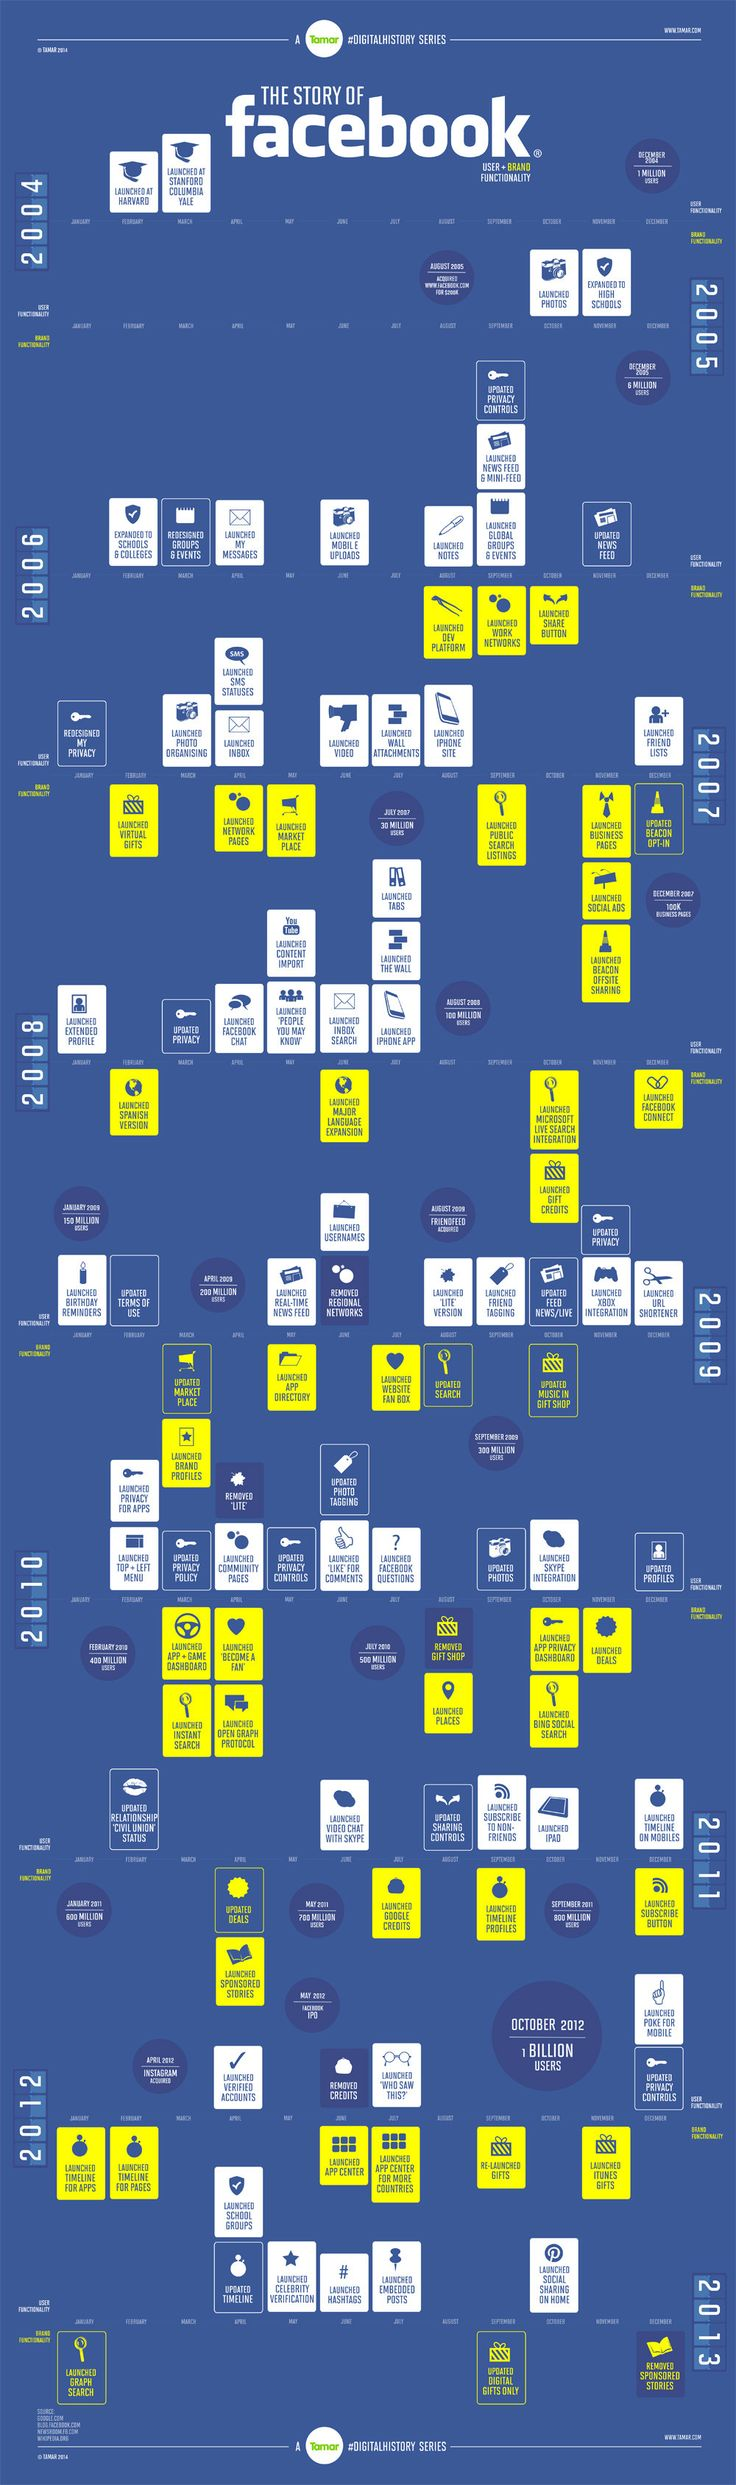 The Story Of Facebook #Infographic #Facebook #SocialMedia